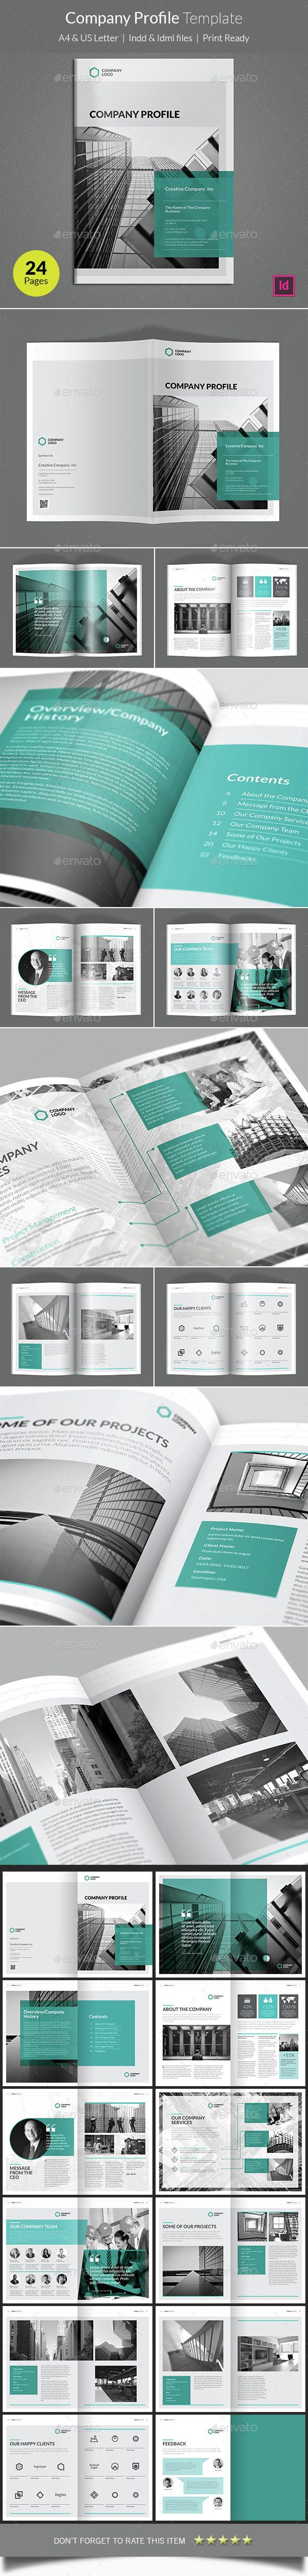 Company Profile Brochure Template InDesign INDD Download Here - Brochure design templates indesign